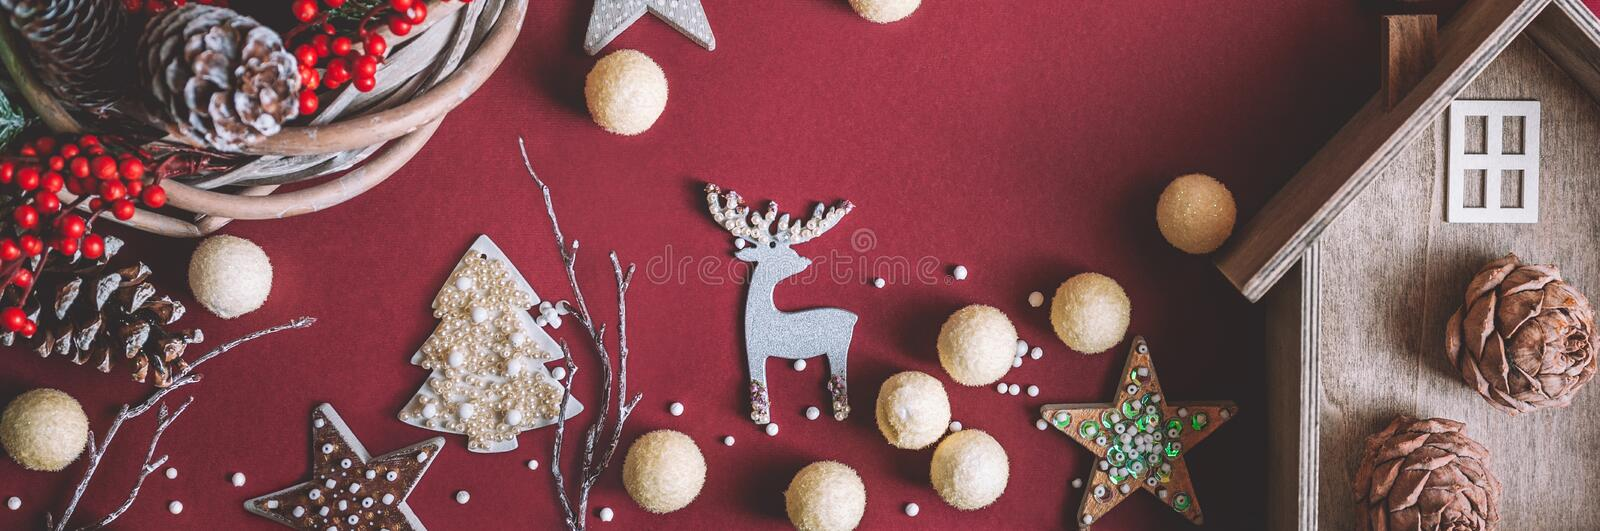 Creative layout banner merry christmas and new year holidays on burgundy paper background decorative house of a deer and wreath royalty free stock photography